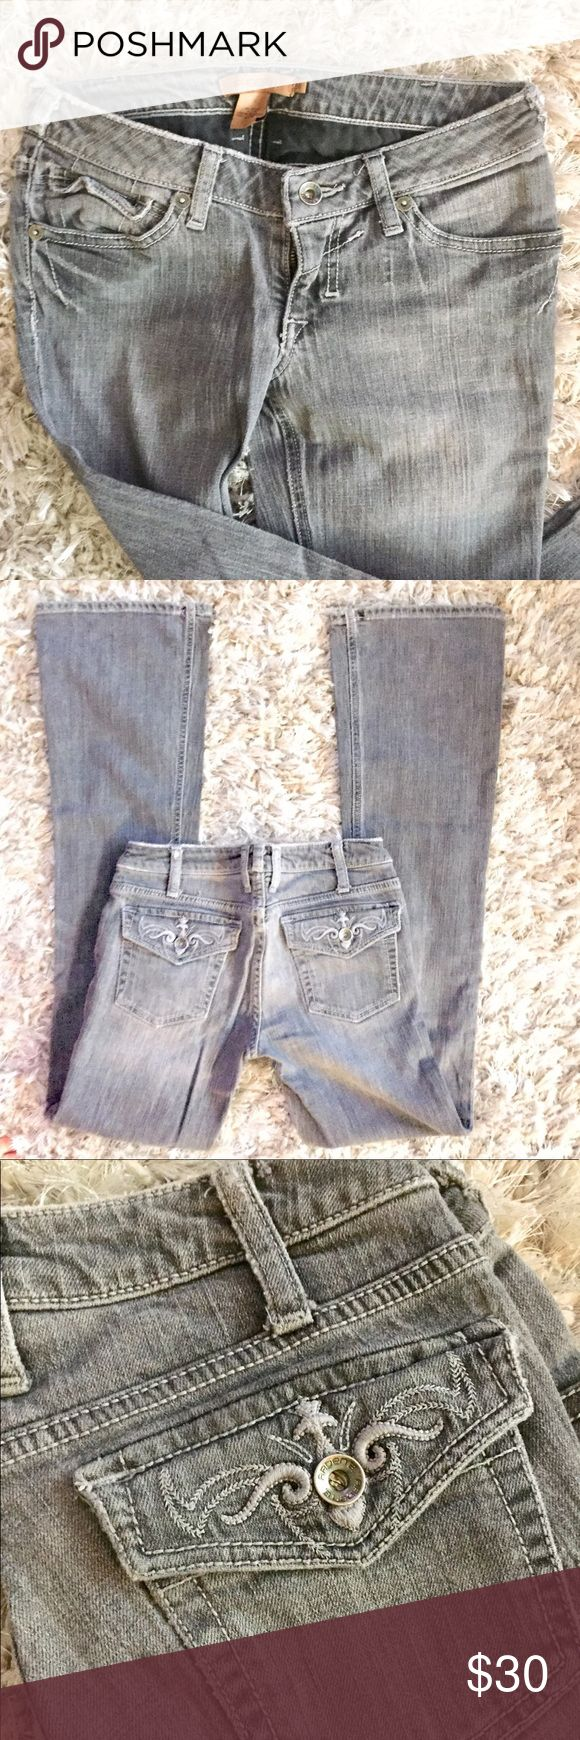 Grey Embroidered Detail Bootcut Jeans Great Condition. Gray denim color. Embroidered back pocket detail. Has some stretch to it. Super comfy.  Size 26 Inseam 32 Rise is about 6.5  Light wear on the back hem but not very noticeable.  Smoke/Pet Free home Arden B Jeans Boot Cut